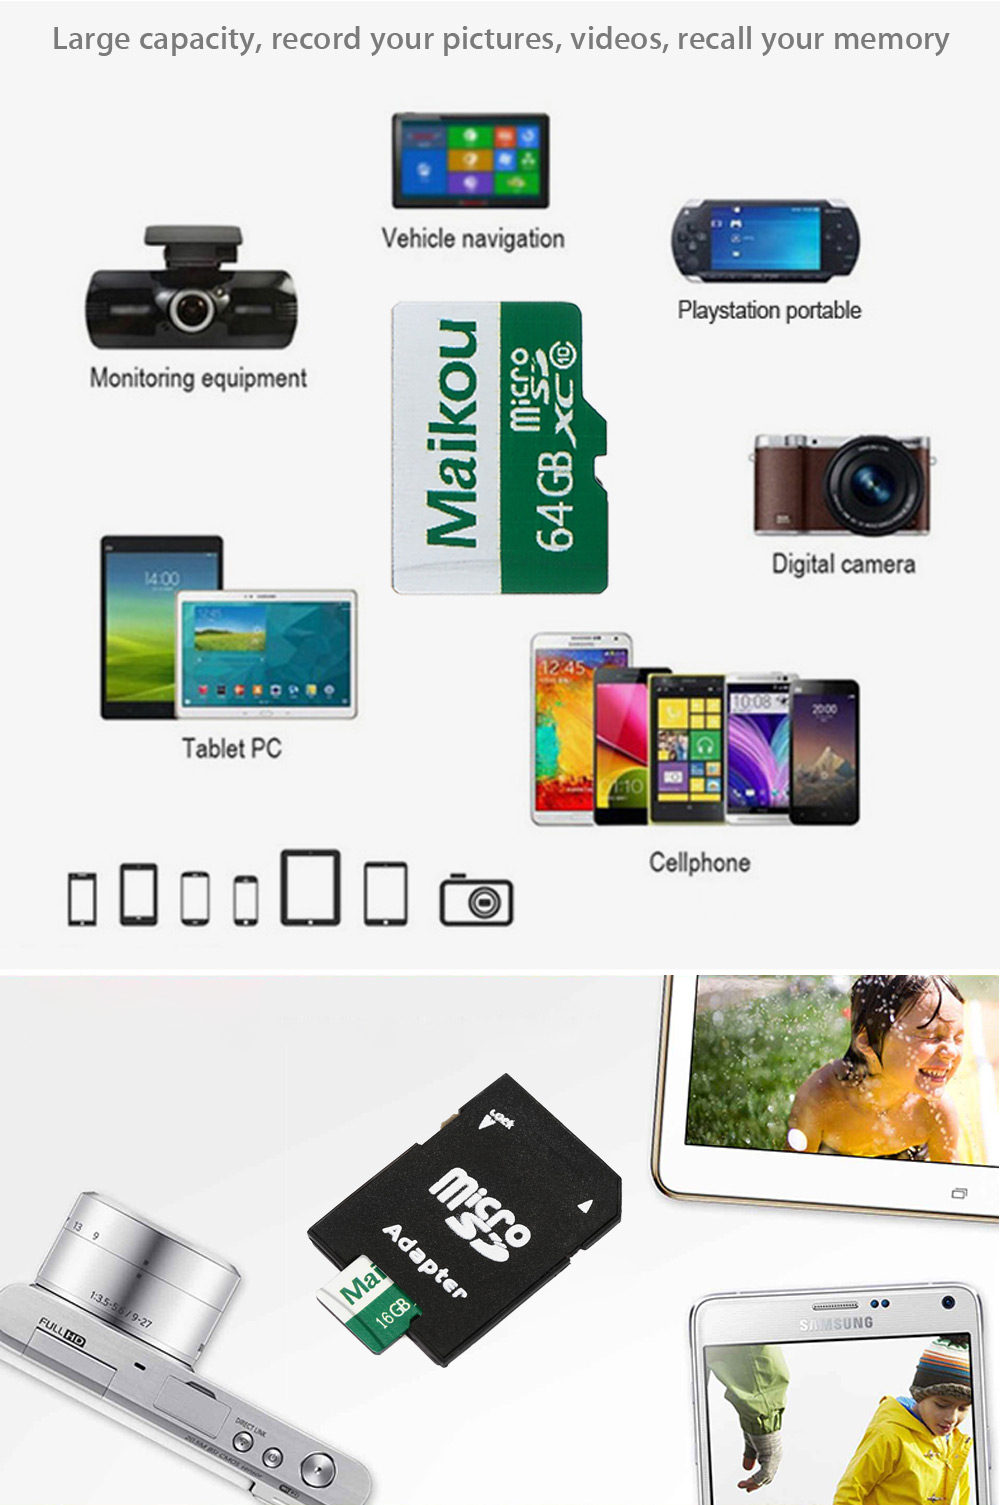 Maikou 2 in 1 16GB Micro SD Card + Adapter Data Storage Device